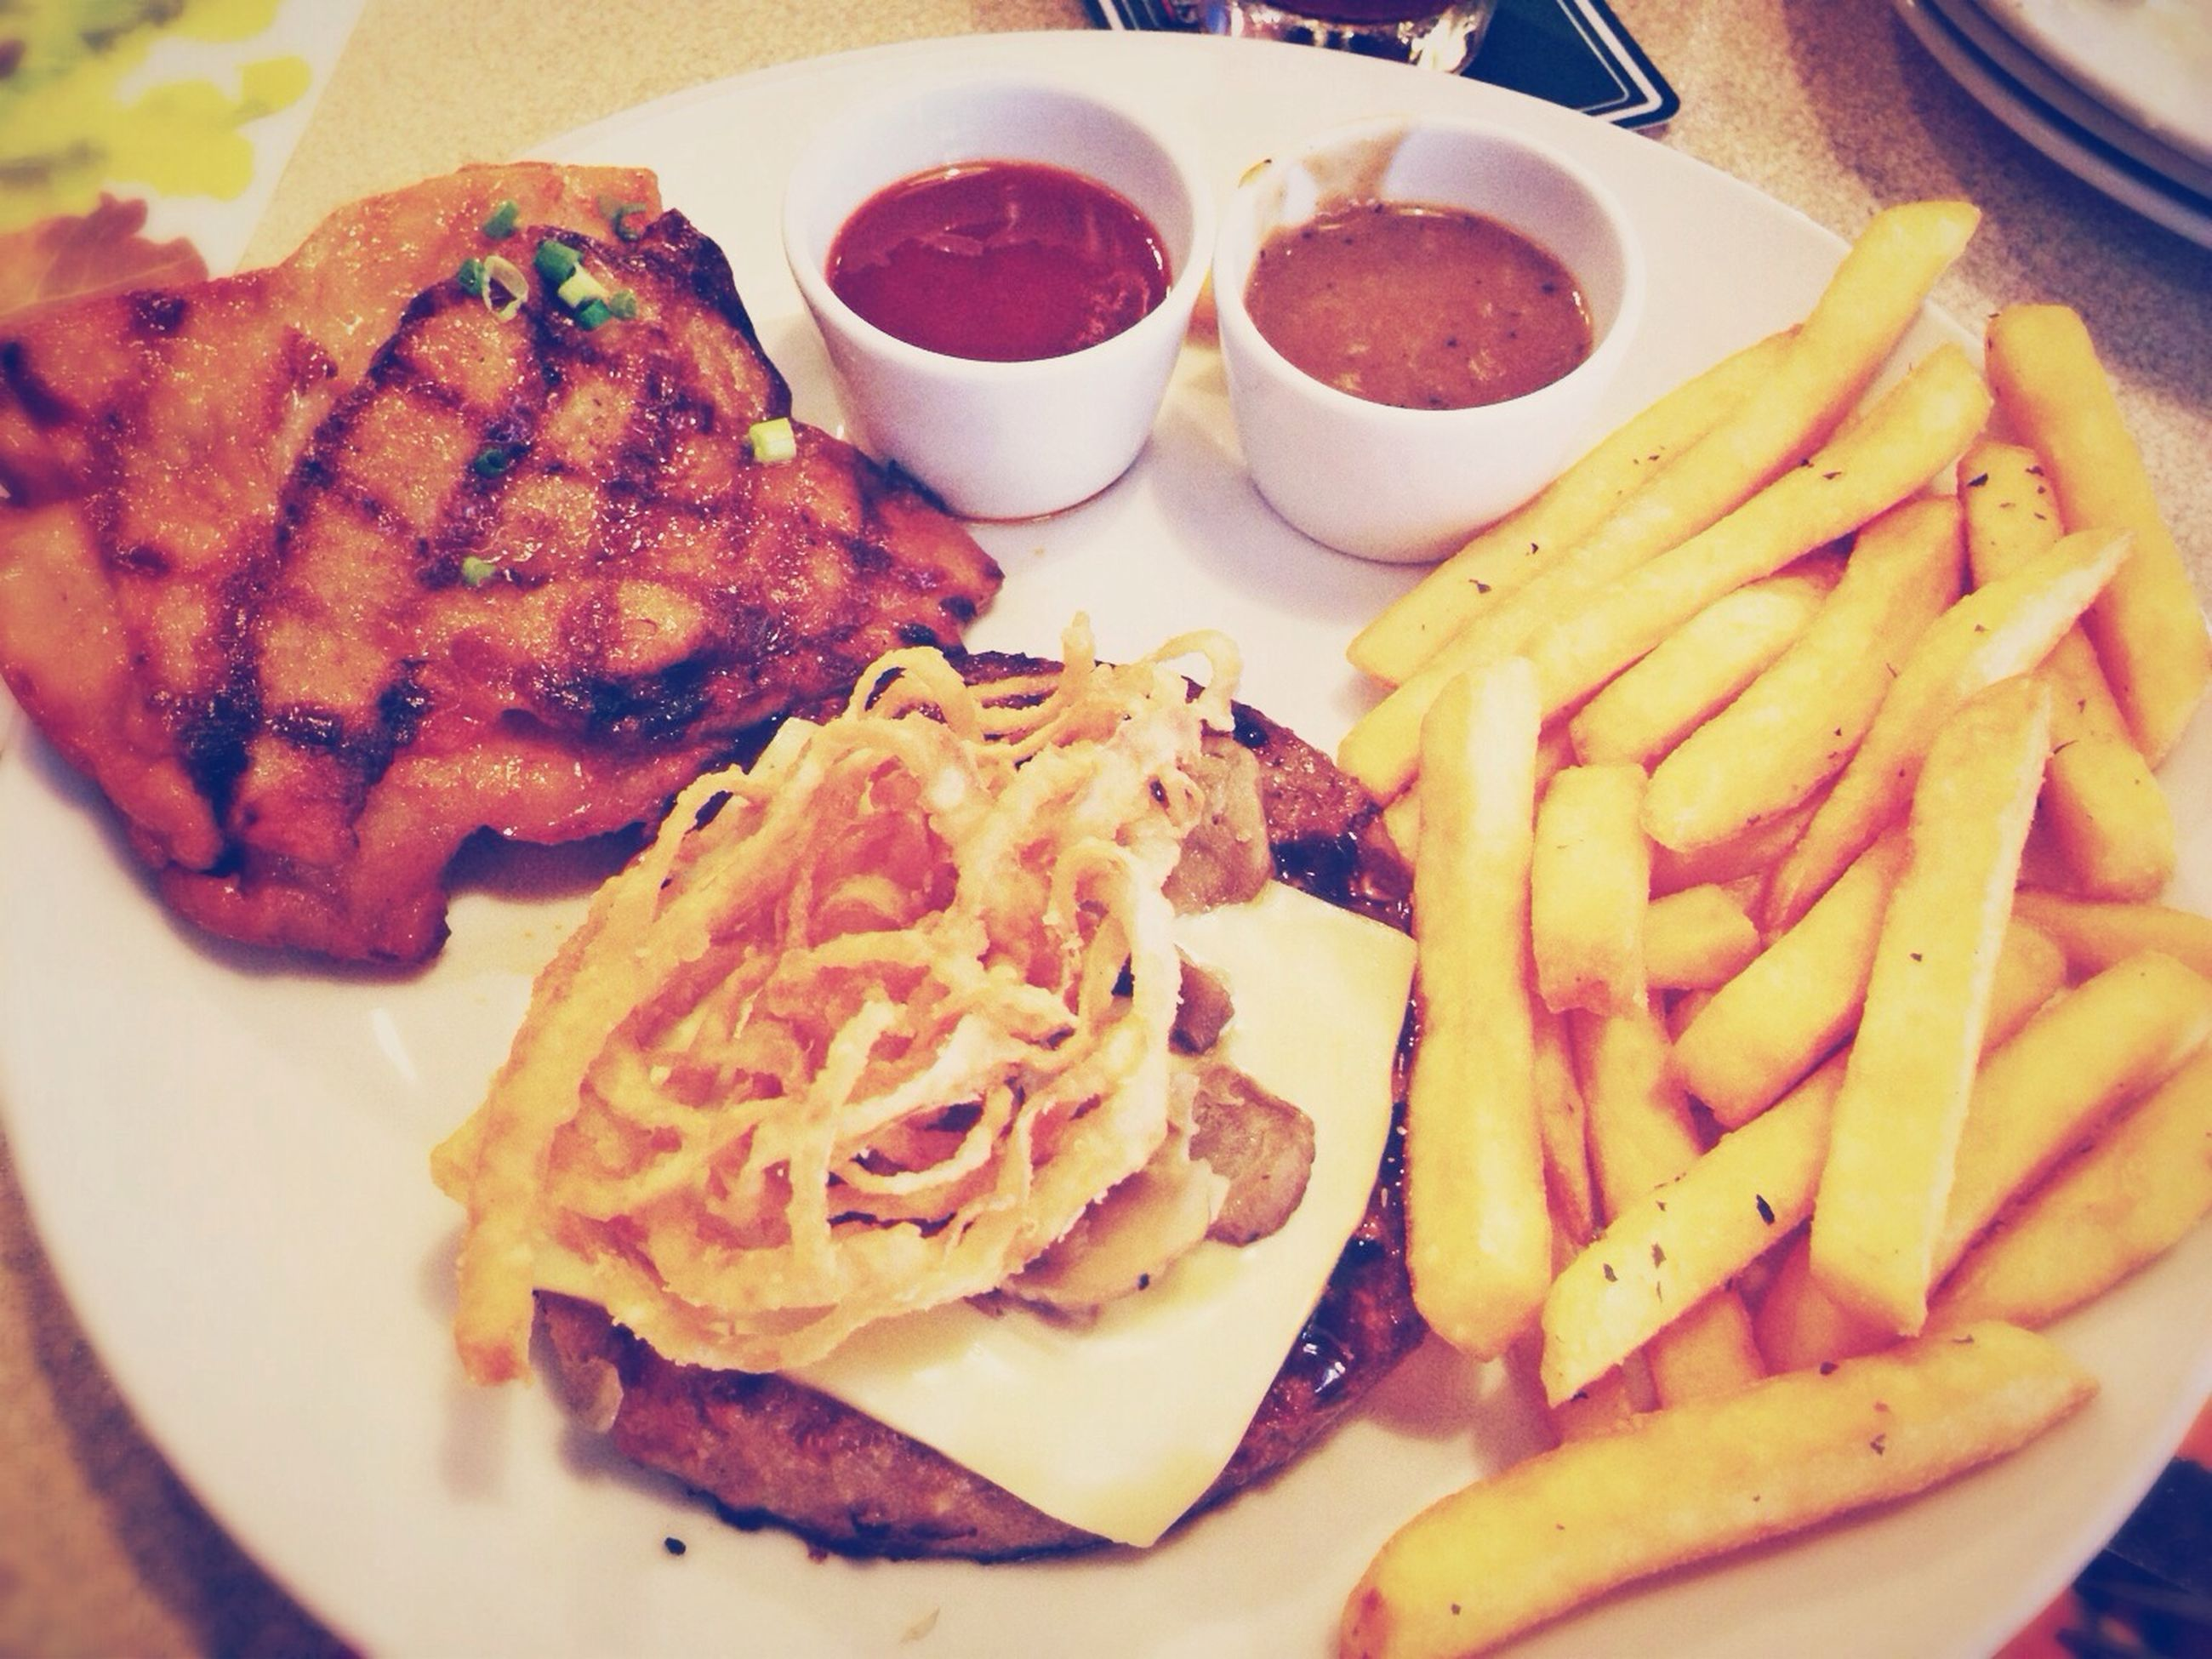 food and drink, food, freshness, ready-to-eat, indoors, plate, close-up, serving size, still life, meal, meat, french fries, healthy eating, indulgence, sauce, table, served, cooked, prepared potato